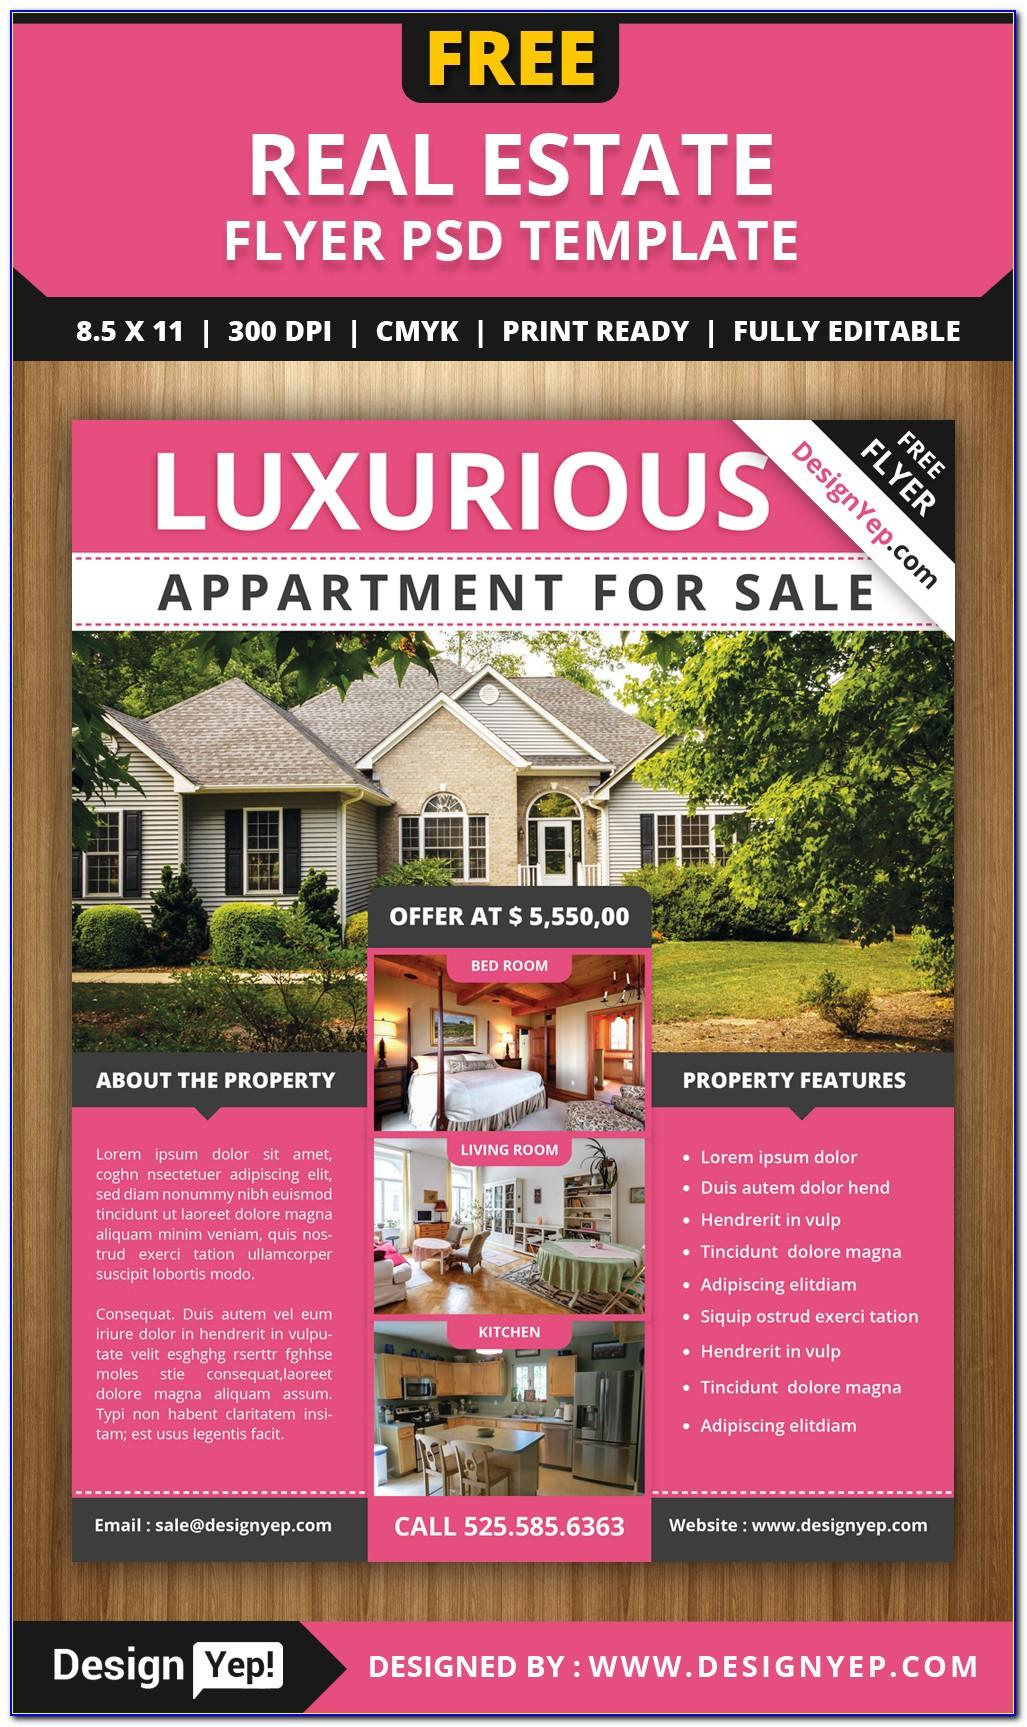 Free Property Management Flyer Template